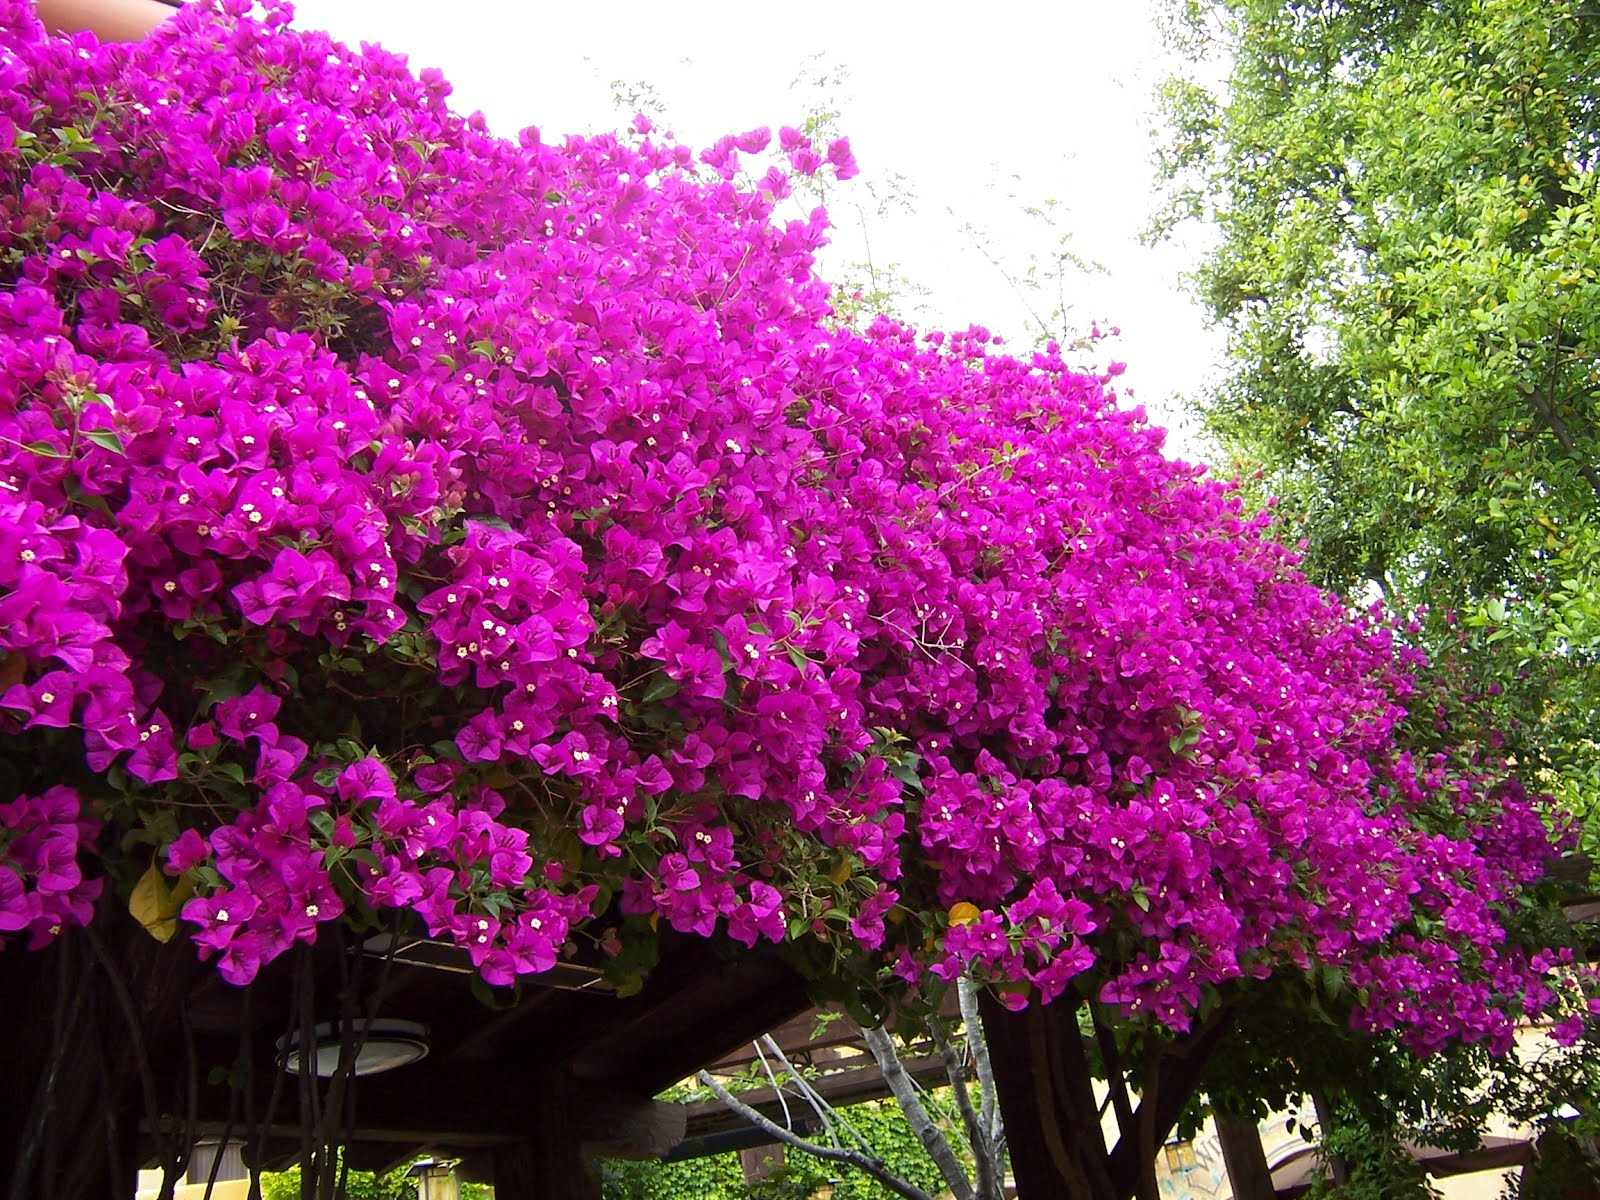 When Kate Blogs: Bougainvillea: A Childhood Memory